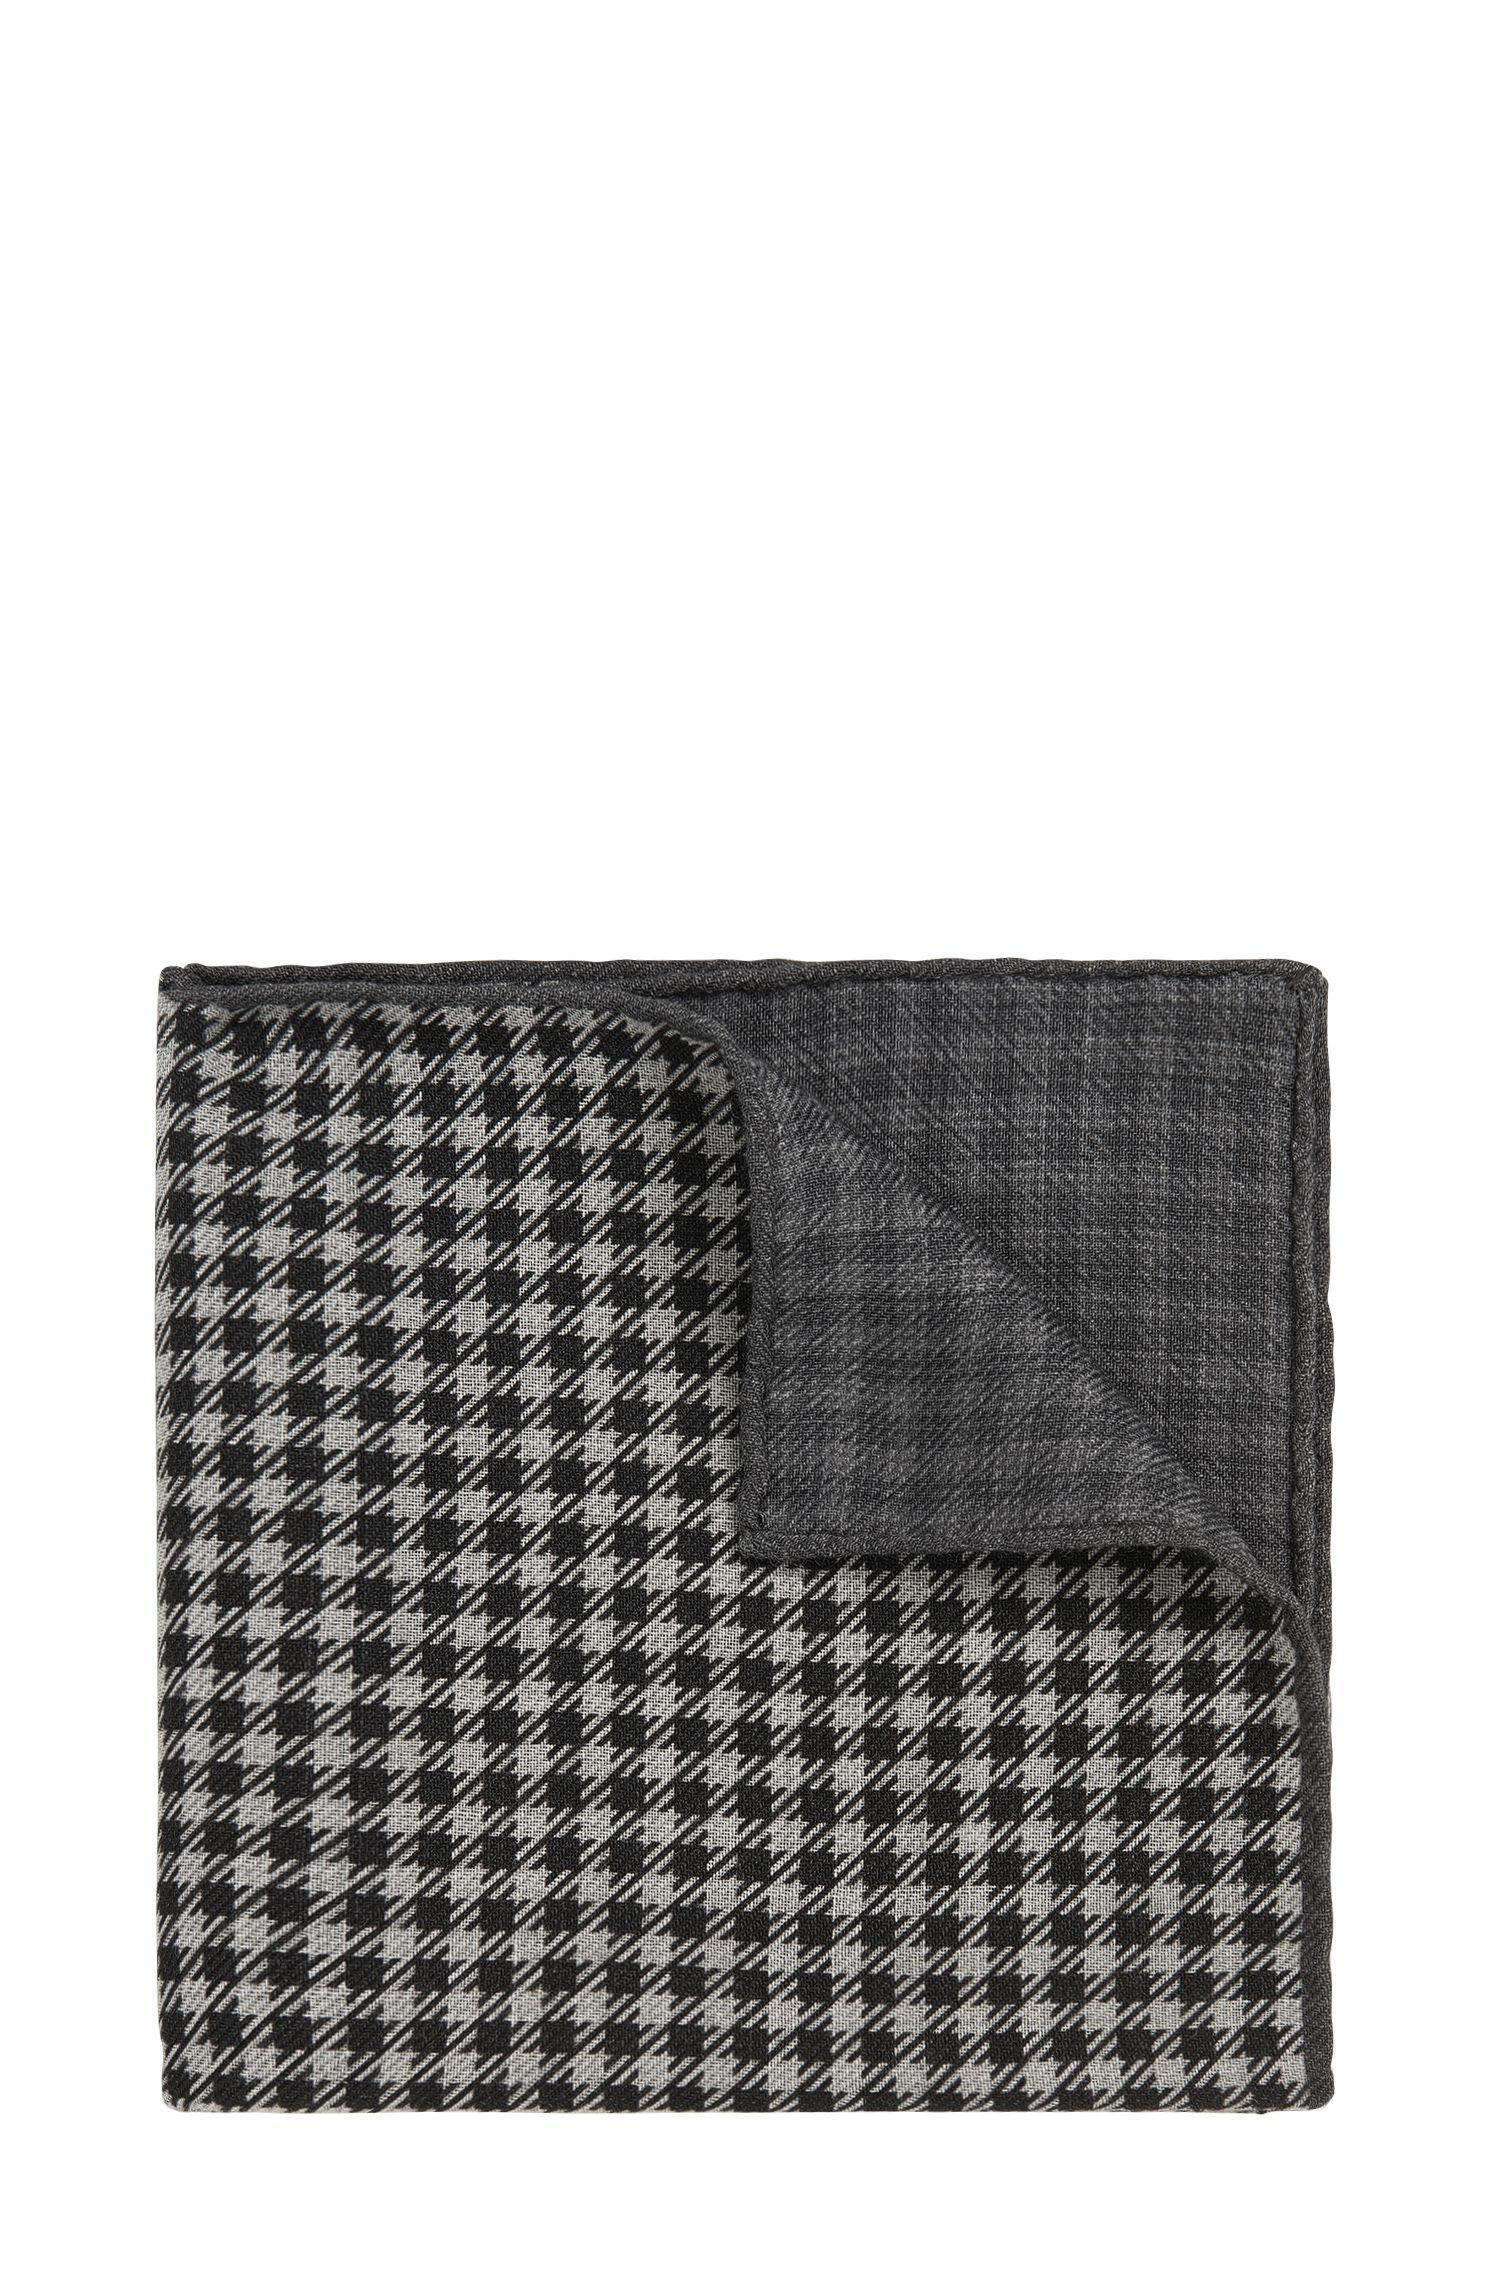 Kariertes Tailored Einstecktuch aus Wolle: 'T-Pocket sq. cm 33x33'